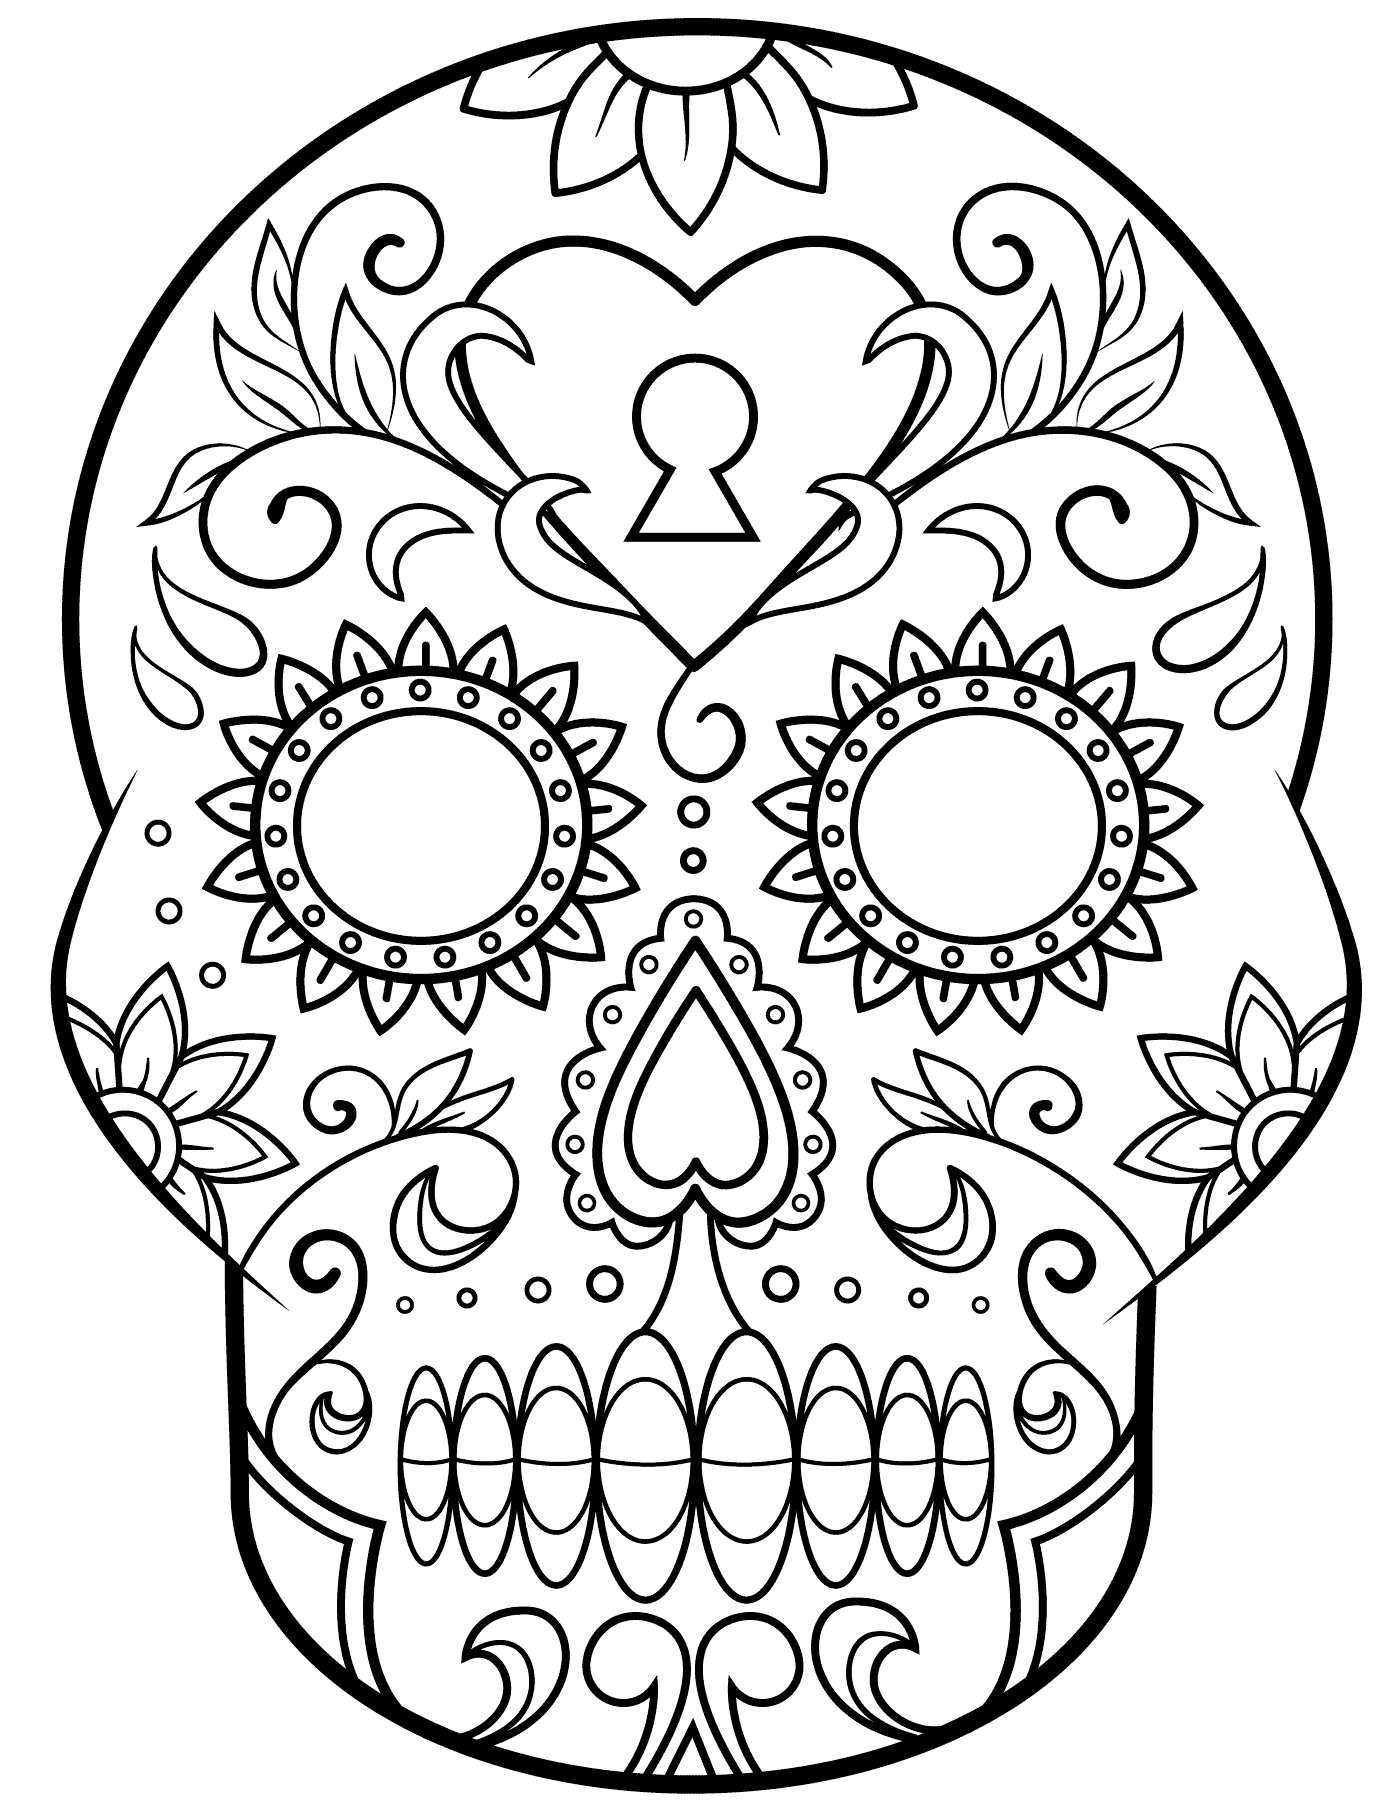 calavera catrina coloring pages - photo#45